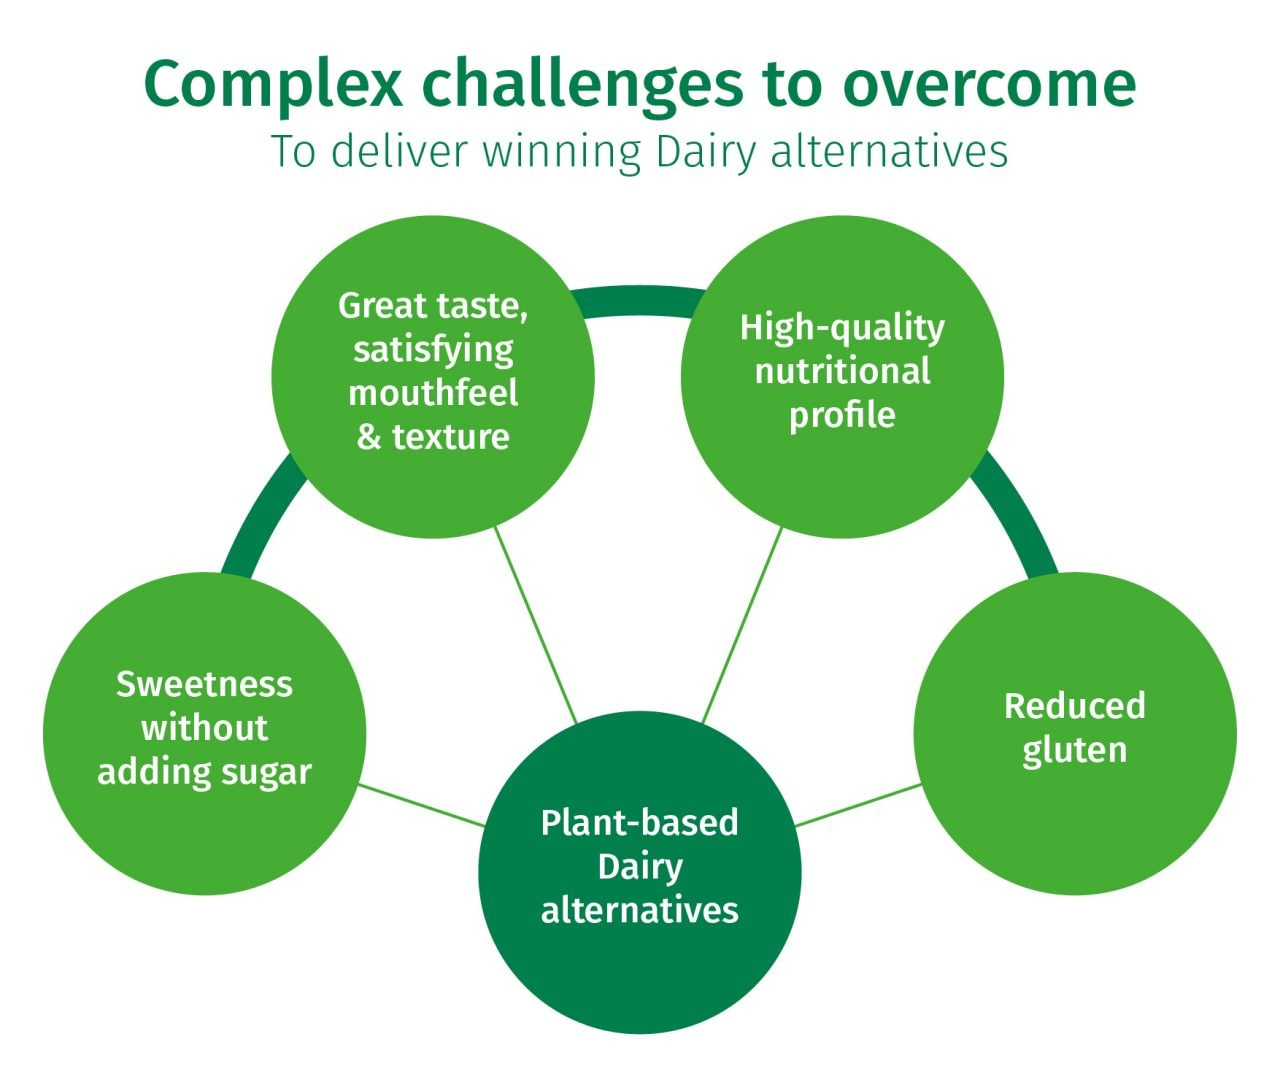 Complex challenges to overcome